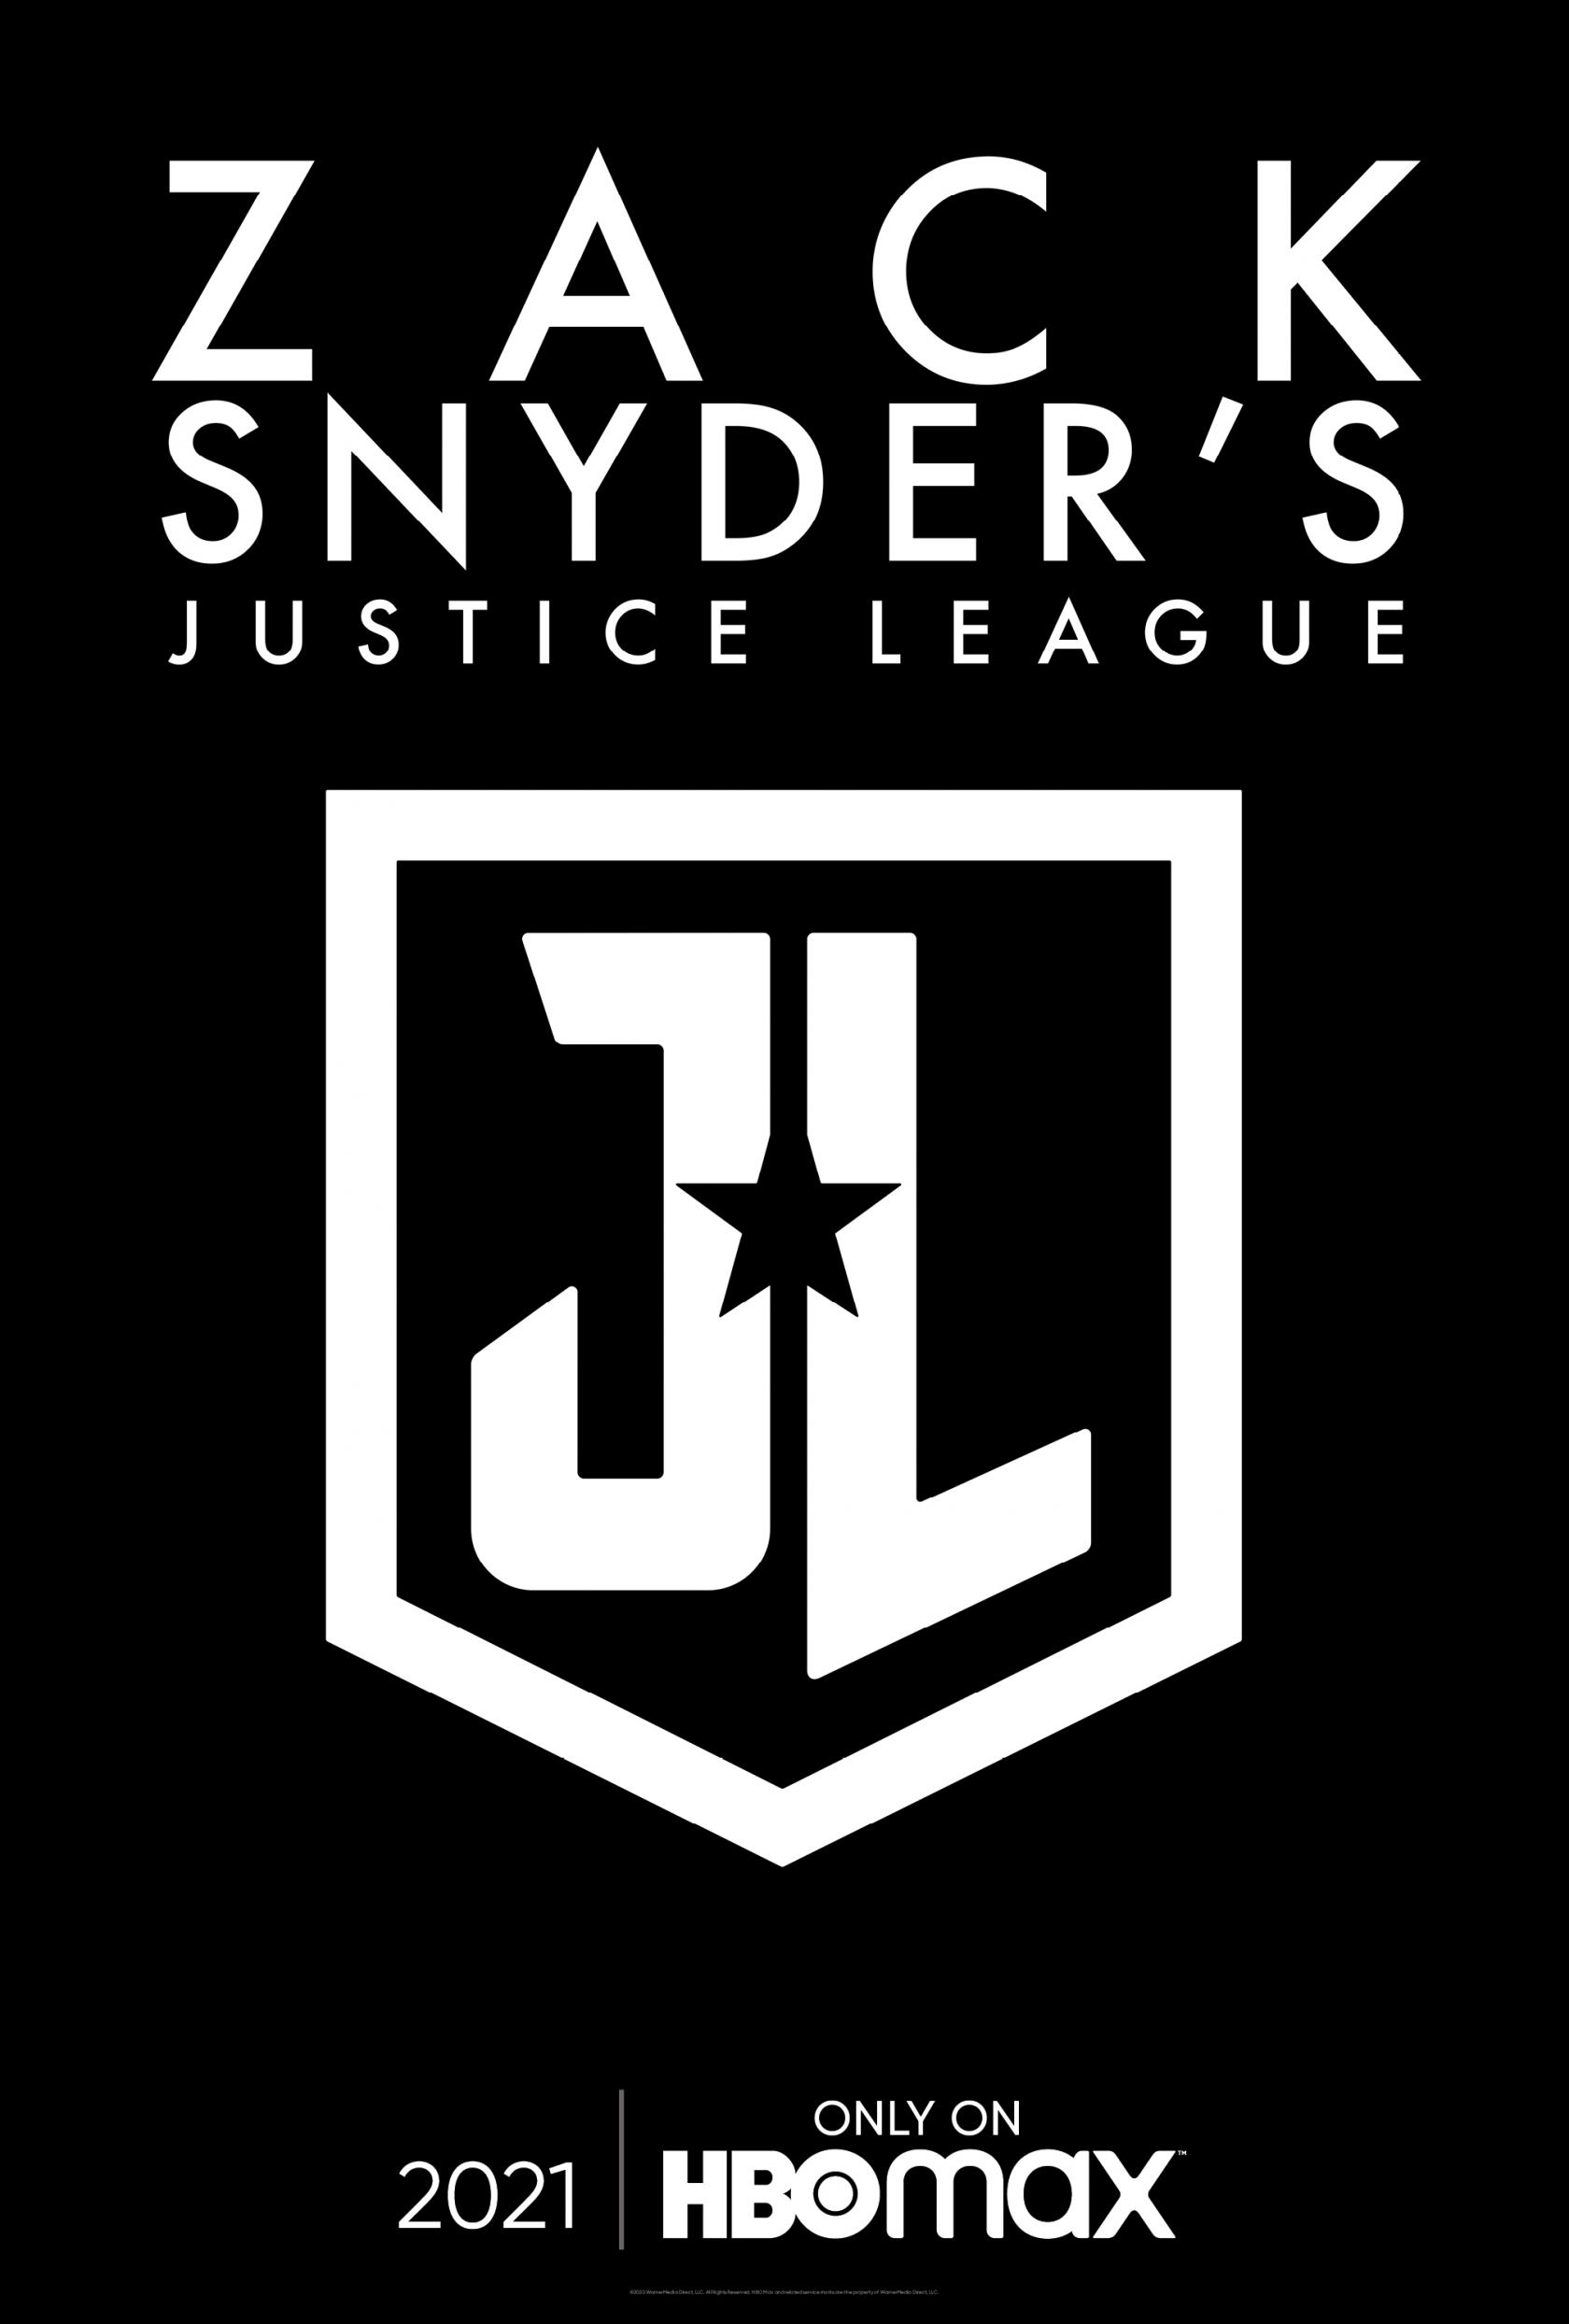 Zack Snyder's Justice League Poster #1